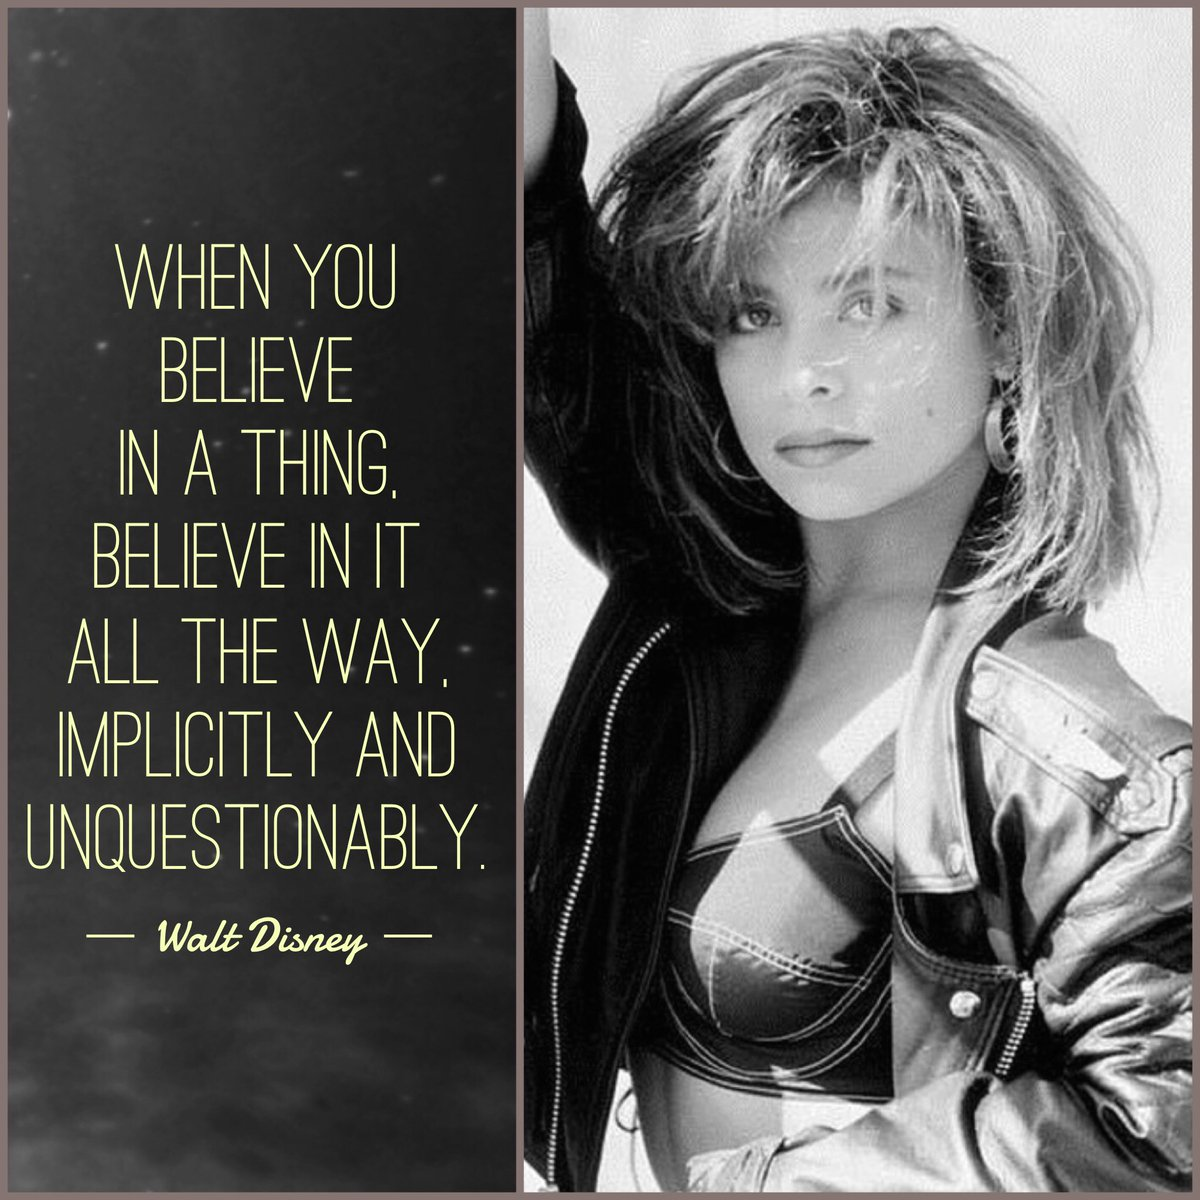 How can others believe in you if YOU don't believe in you? Remember who you are! BELIEVE IN YOURSELF &ALL of your talents. #WednesdayWisdom